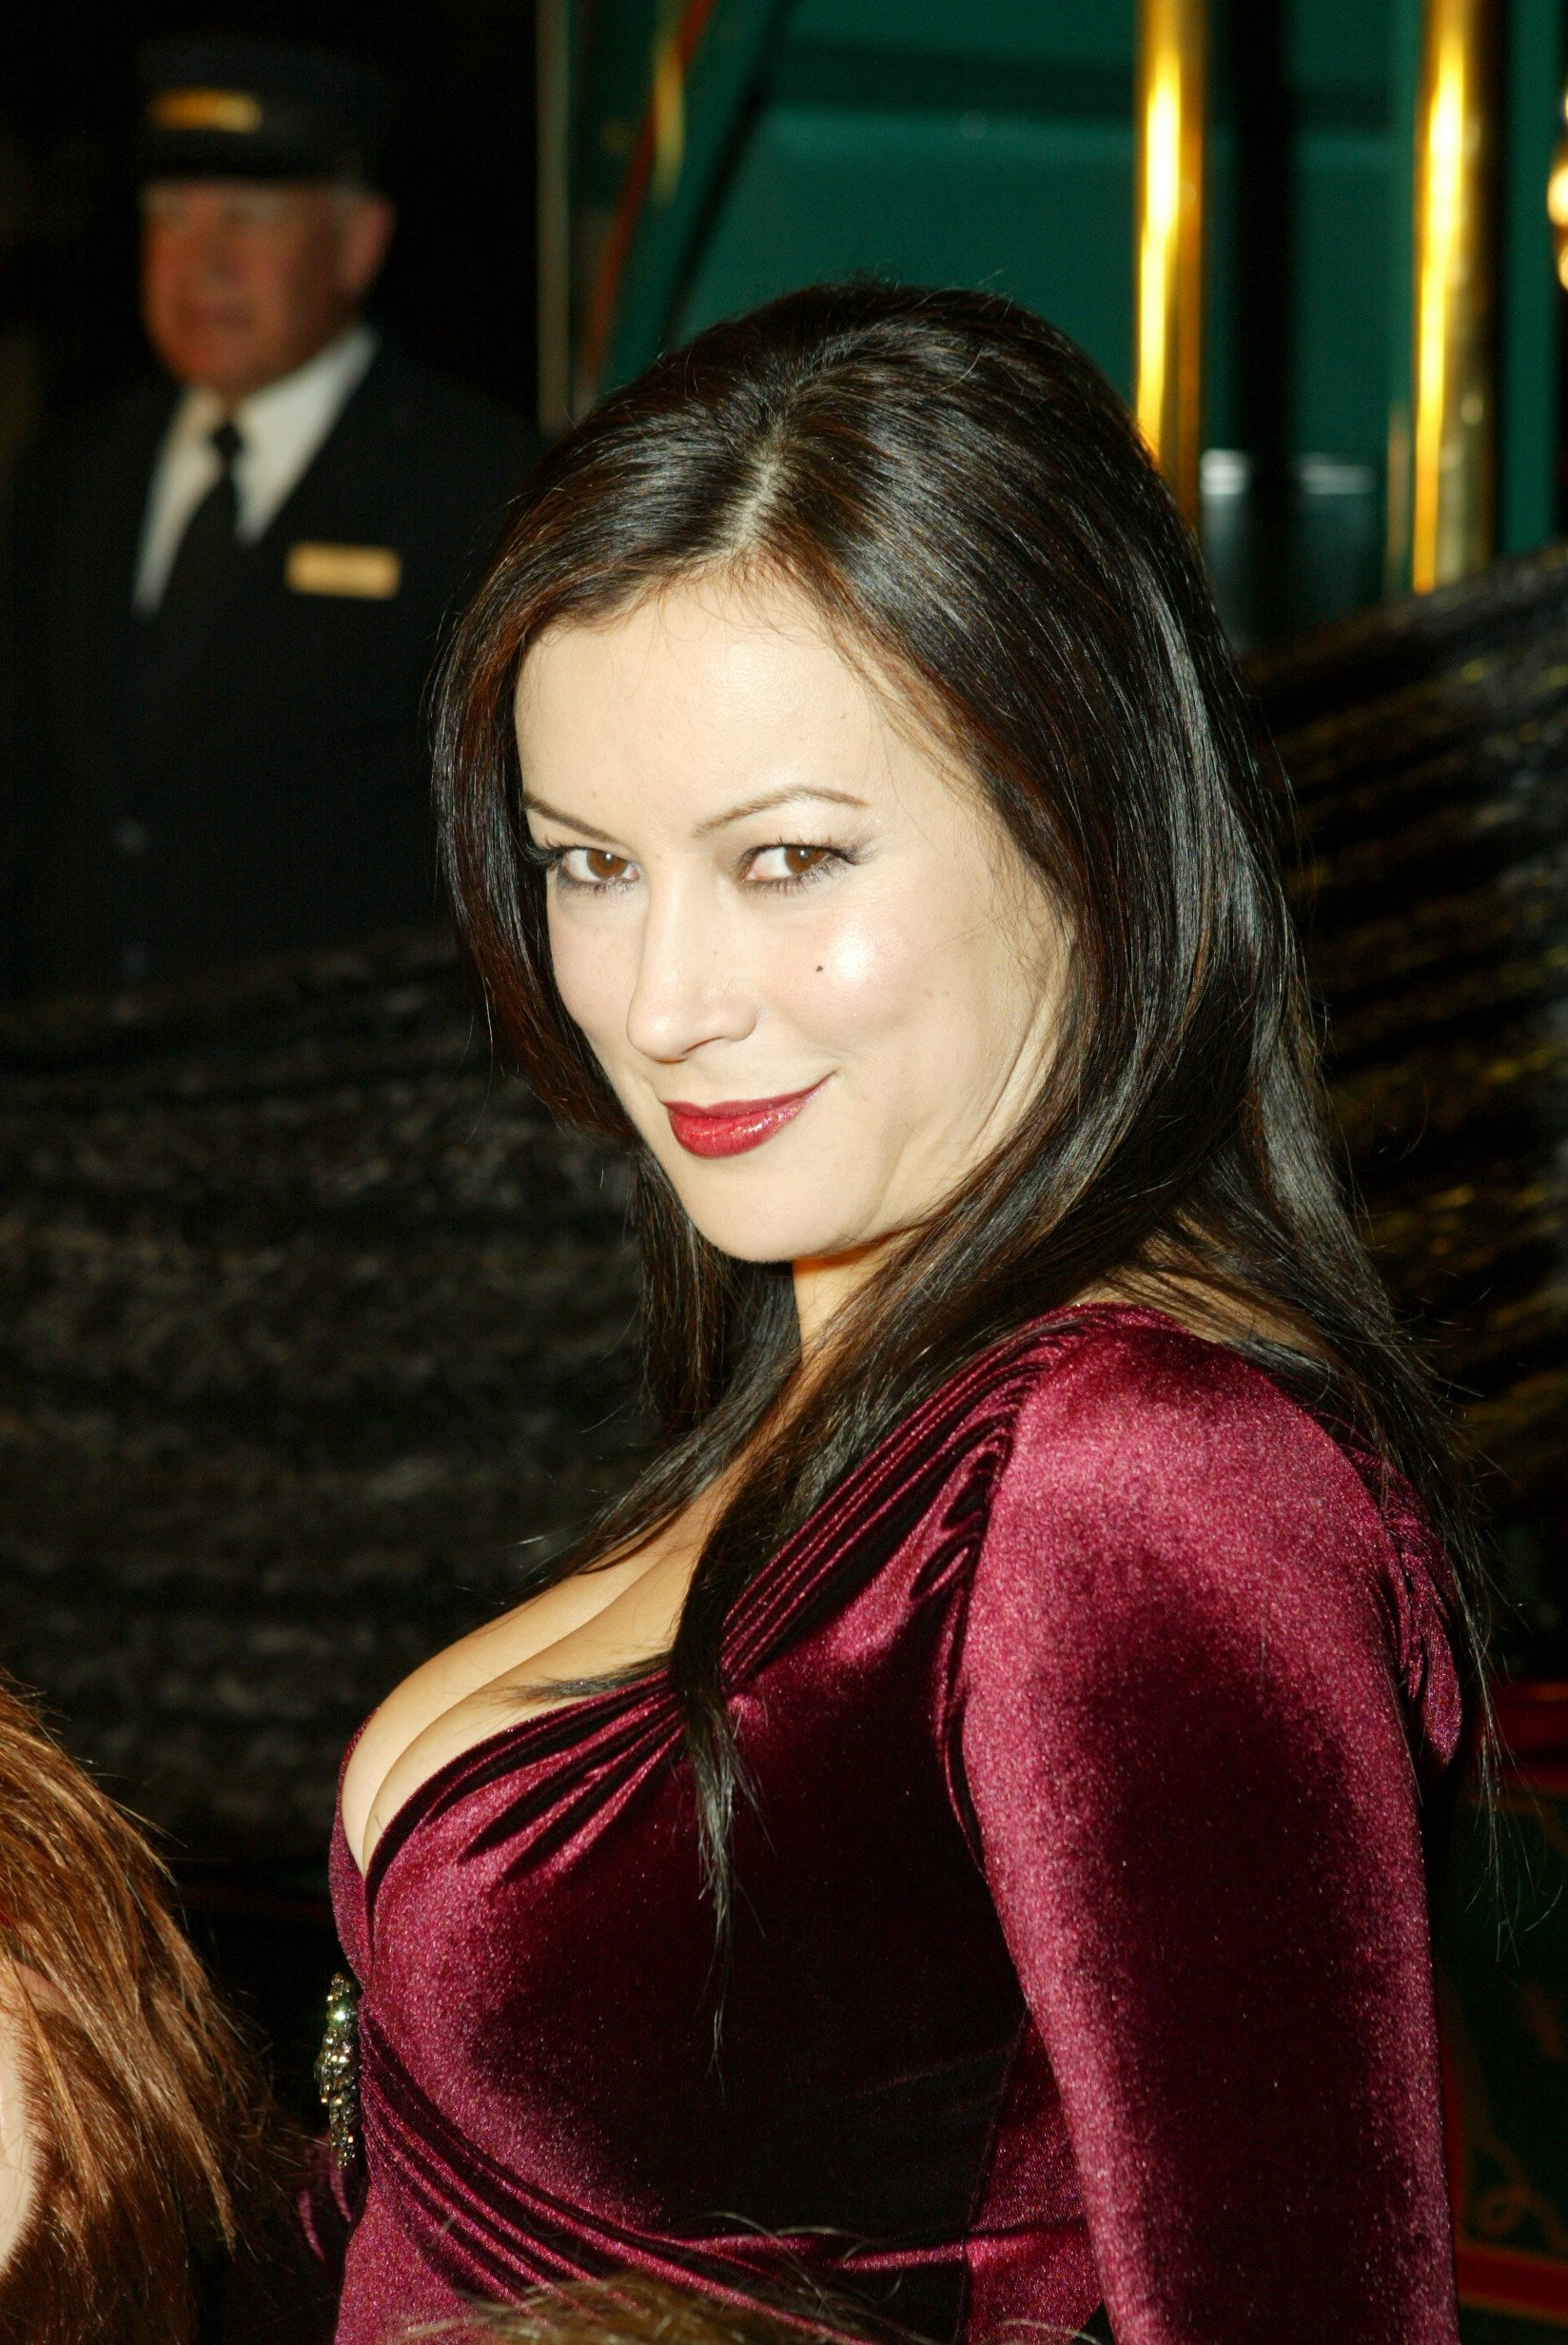 jennifer tilly modern familyjennifer tilly 2016, jennifer tilly 2017, jennifer tilly 2015, jennifer tilly nationality, jennifer tilly photo, jennifer tilly modern family, jennifer tilly twitter, jennifer tilly talks cult of chucky, jennifer tilly family, jennifer tilly pinterest, jennifer tilly poker, jennifer tilly фильмография, jennifer tilly net worth, jennifer tilly and phil laak, jennifer tilly listal, jennifer tilly tonight show, jennifer tilly ethnic, jennifer tilly filmleri